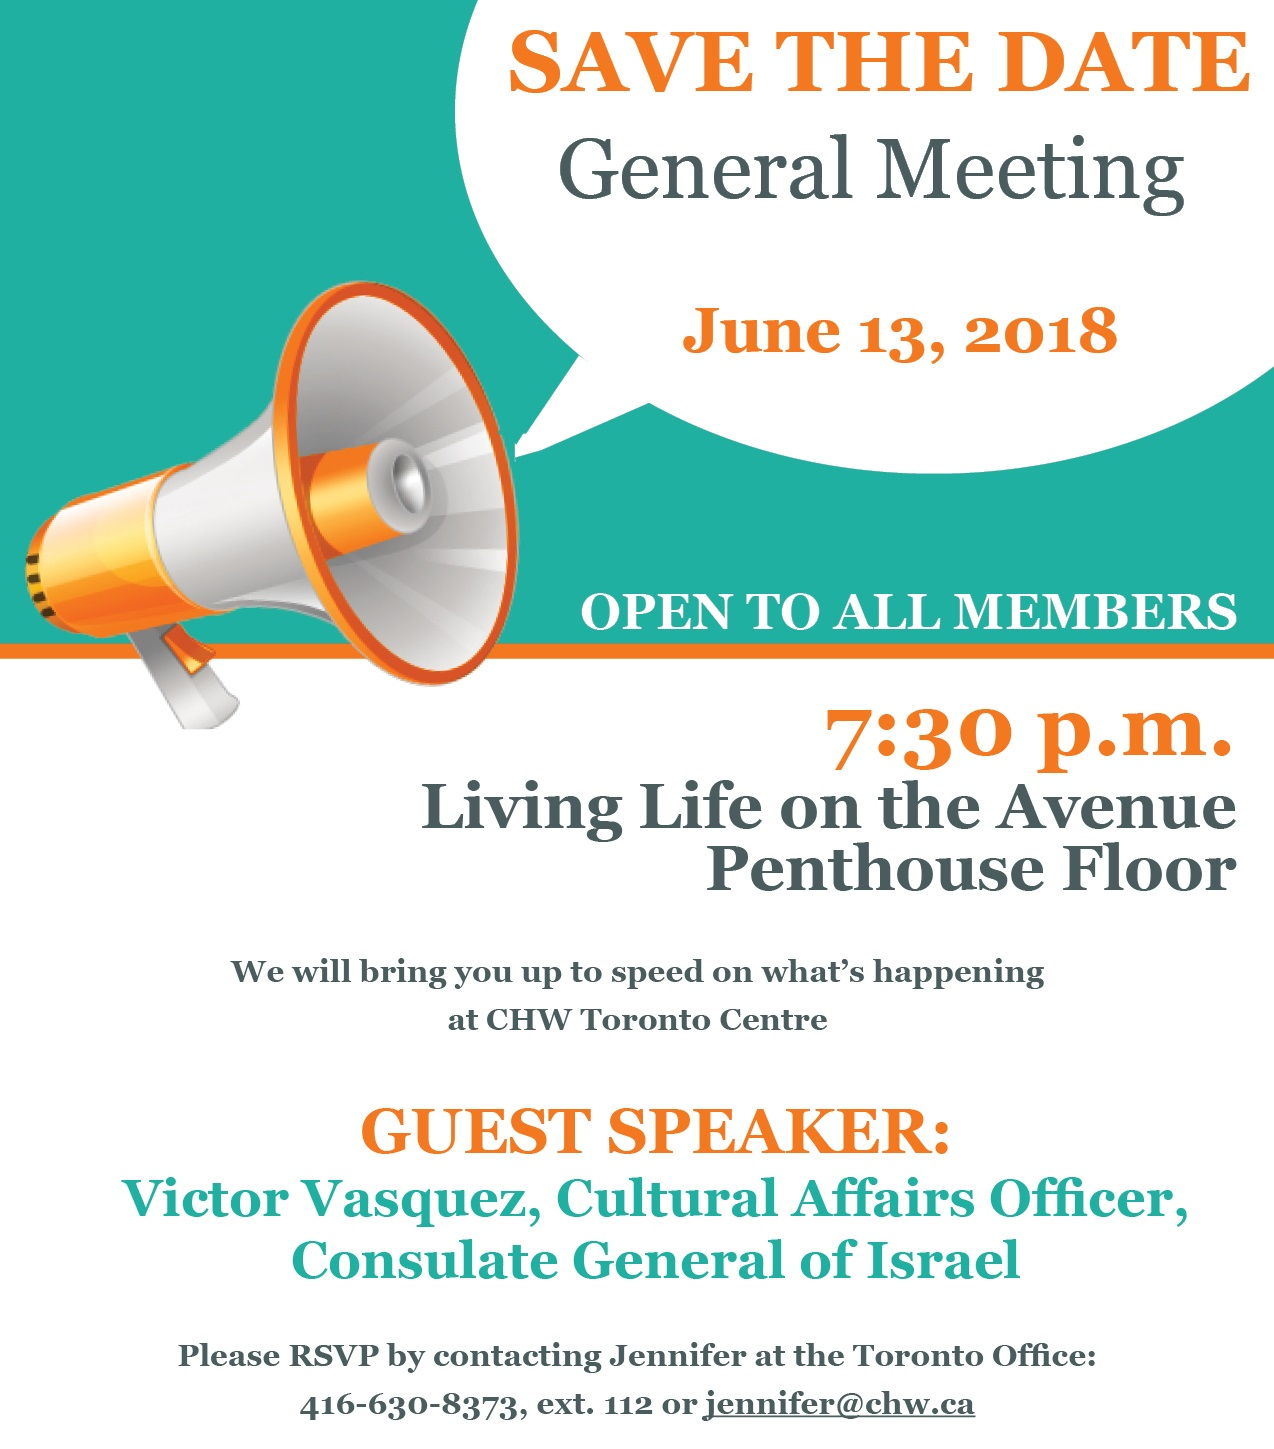 CHW Toronto: General Meeting @ Living Live on the Avenue